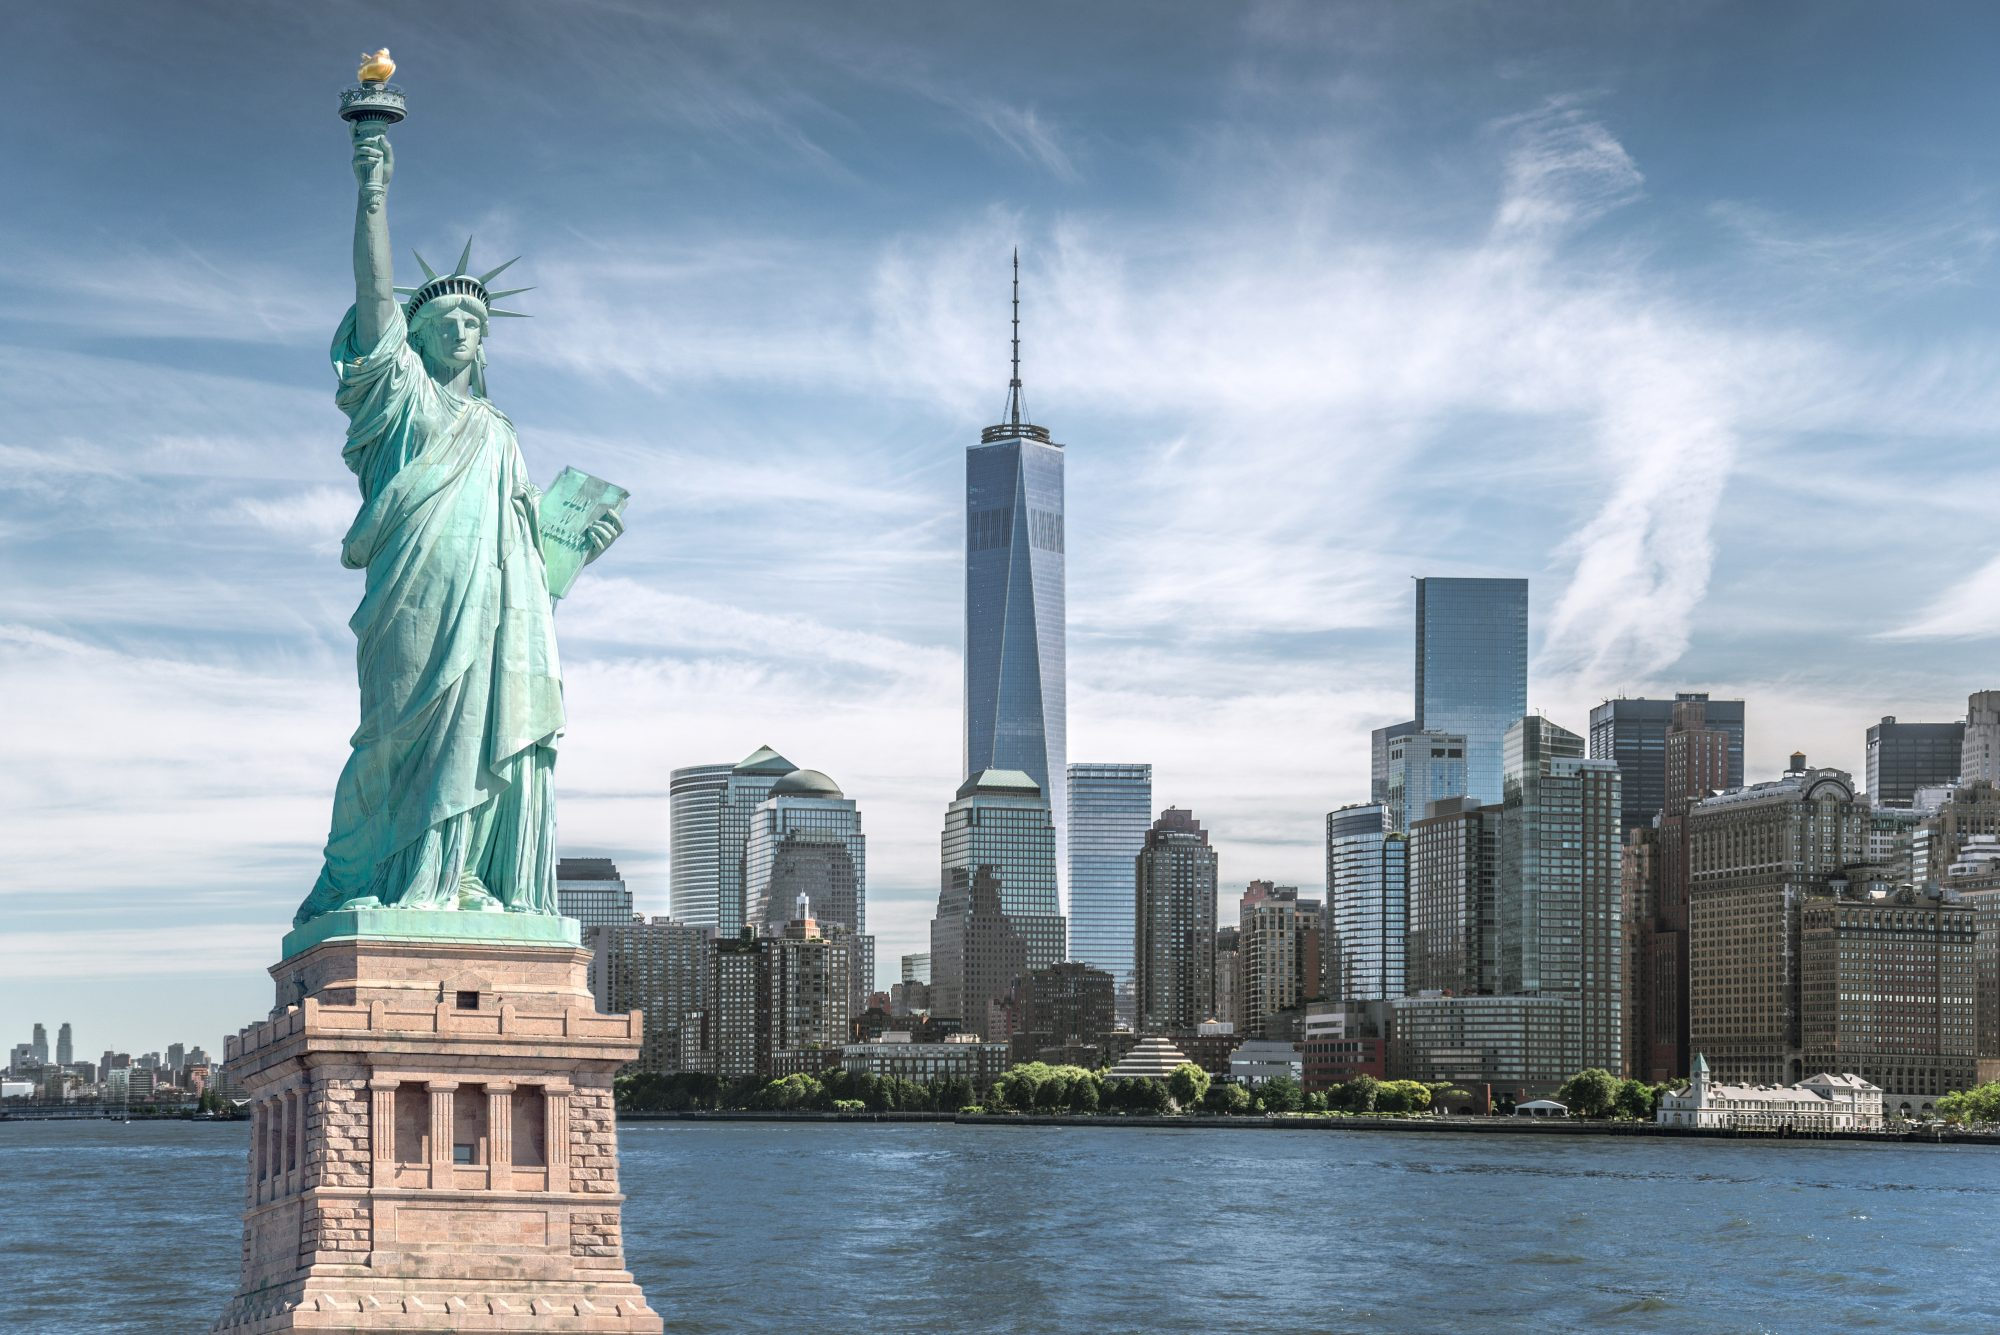 statue of liberty and 1 world trade in nyc